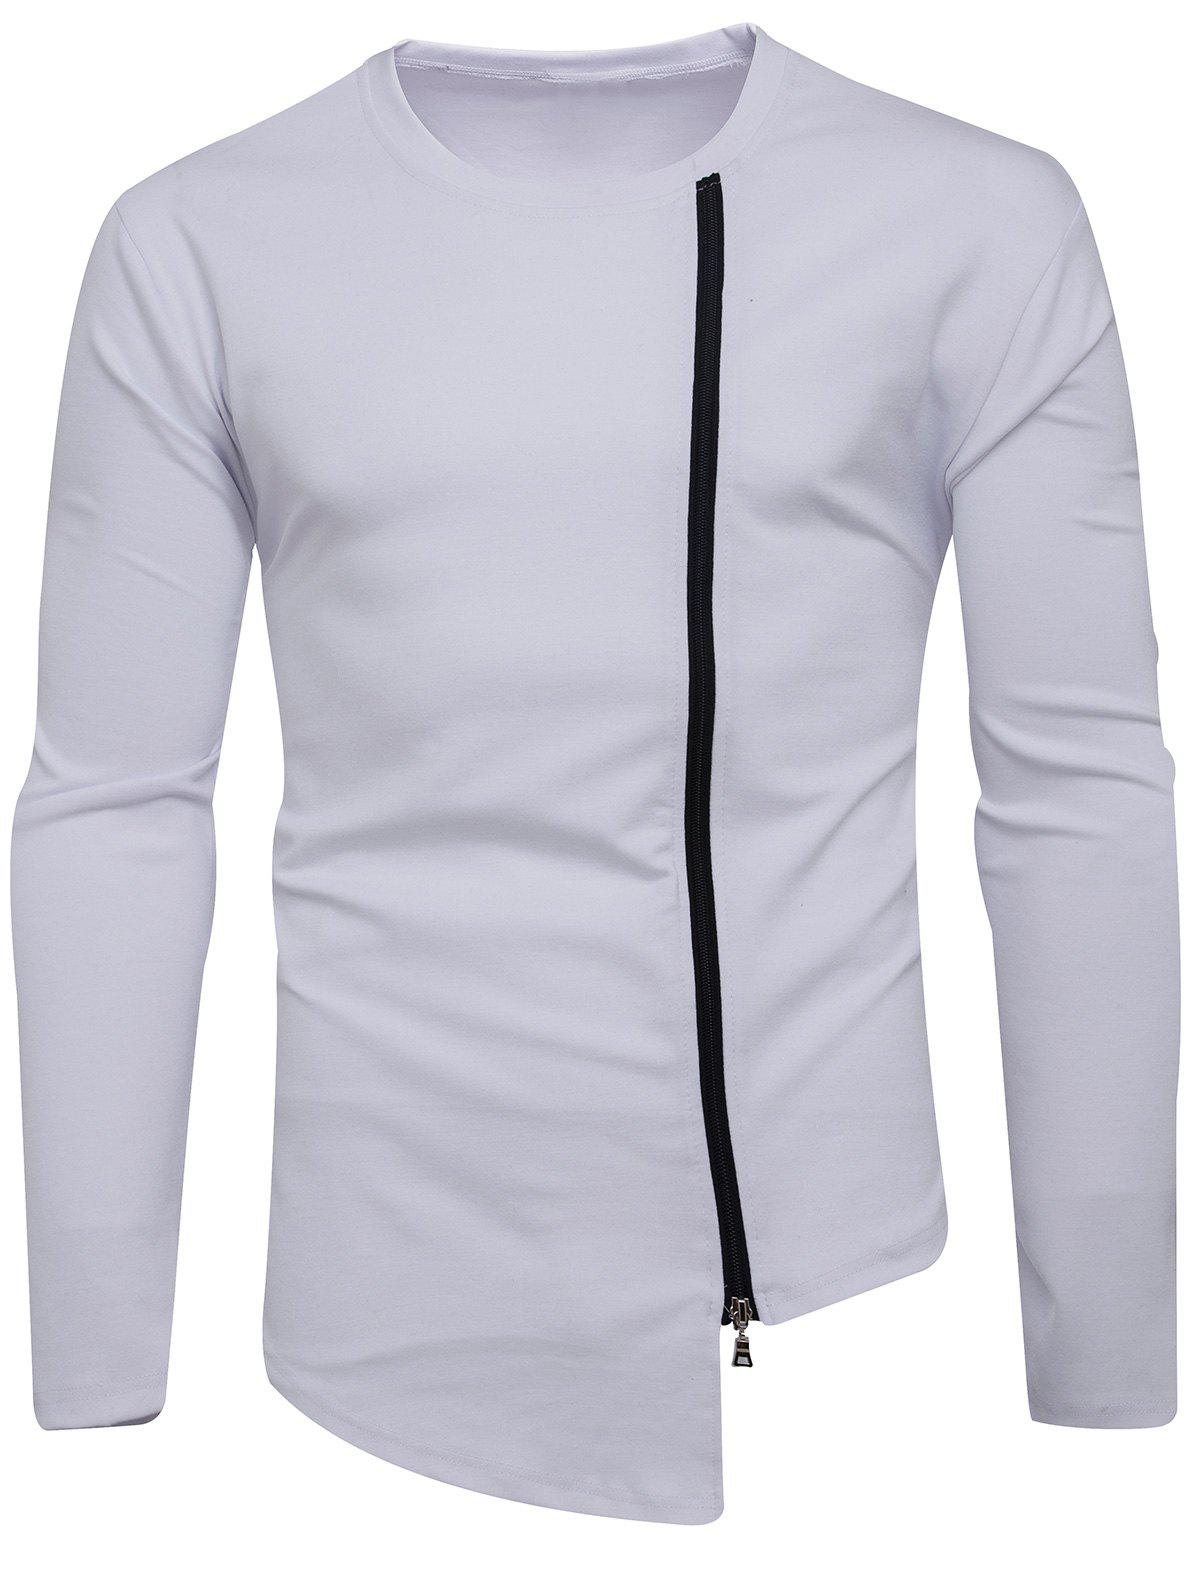 Buy Oblique Zip Up Asymmetric T-shirt